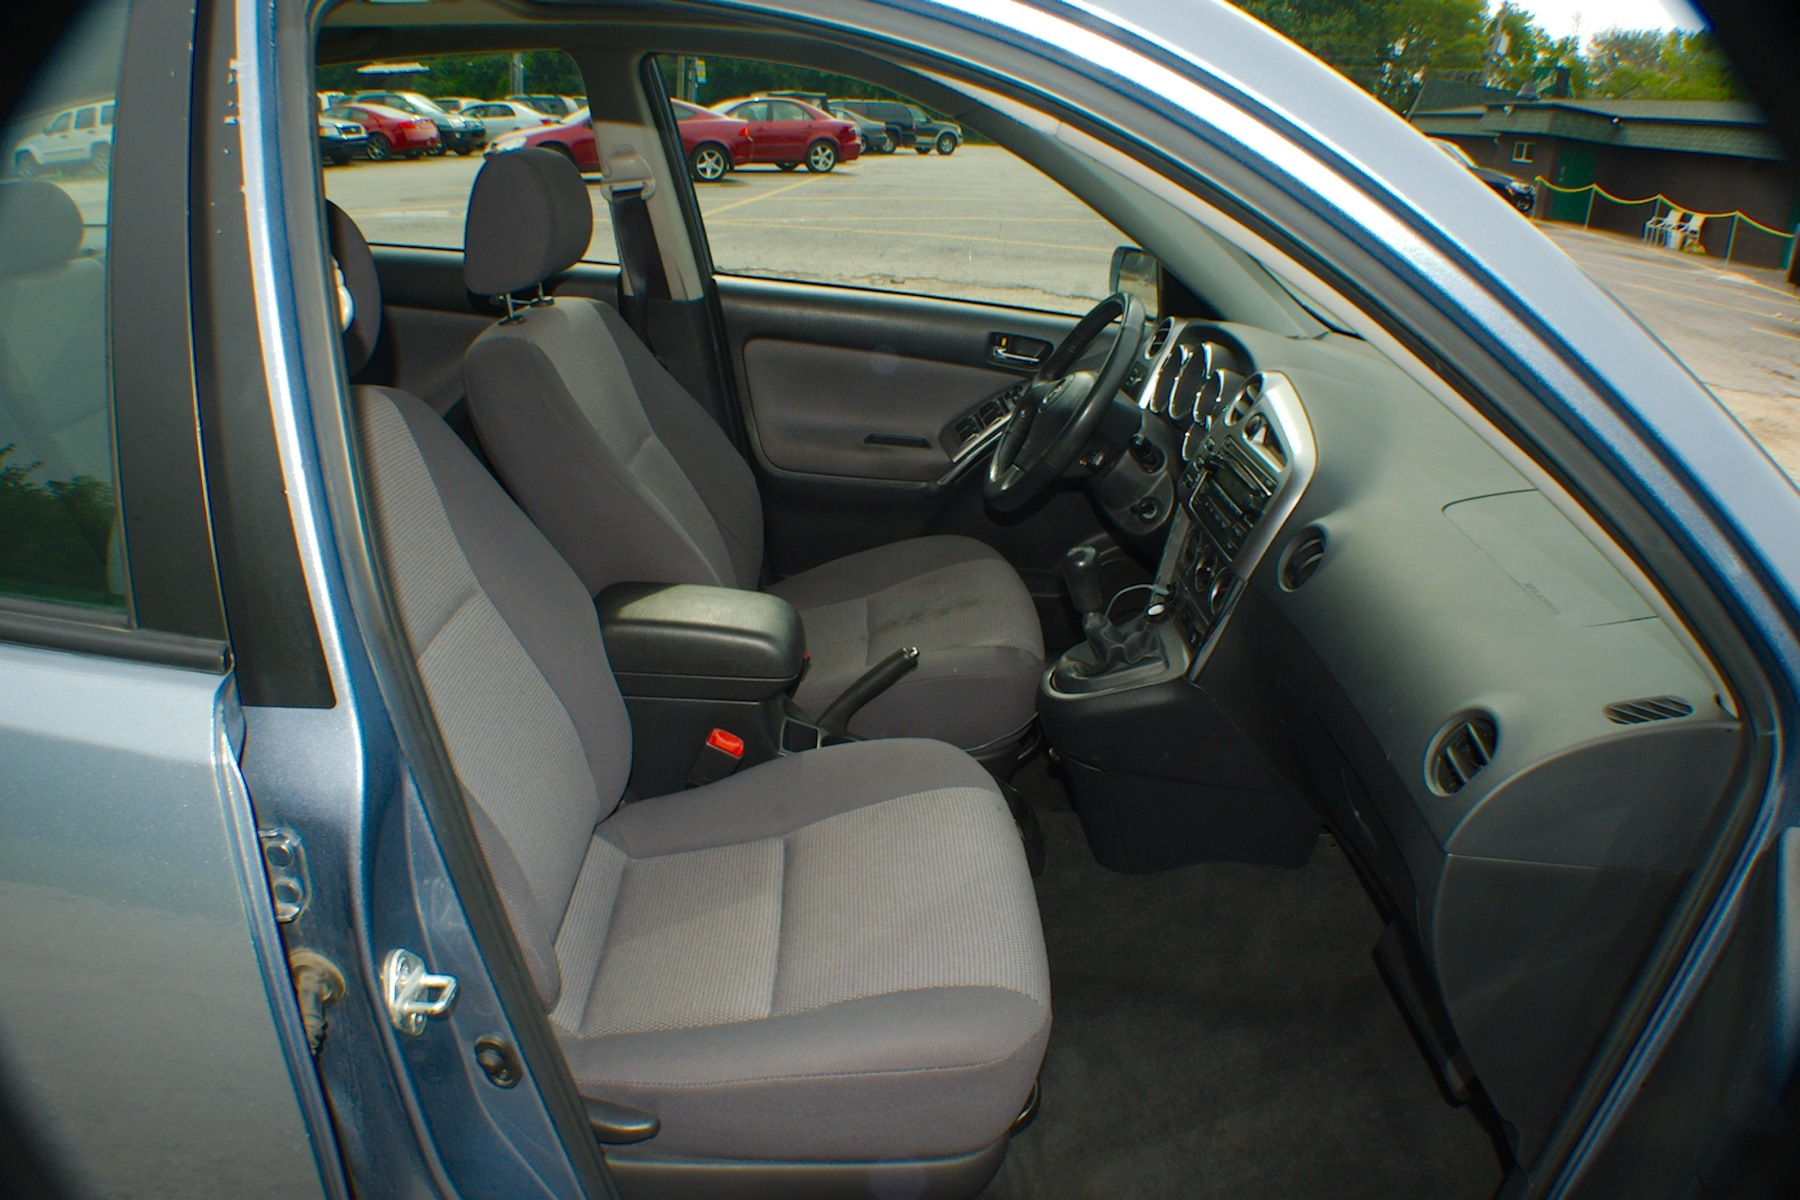 2006 Toyota Matrix Blue Manual Sedan Used Wagon Sale Lake Villa Lake Zurich Lakemoor Milwaukee